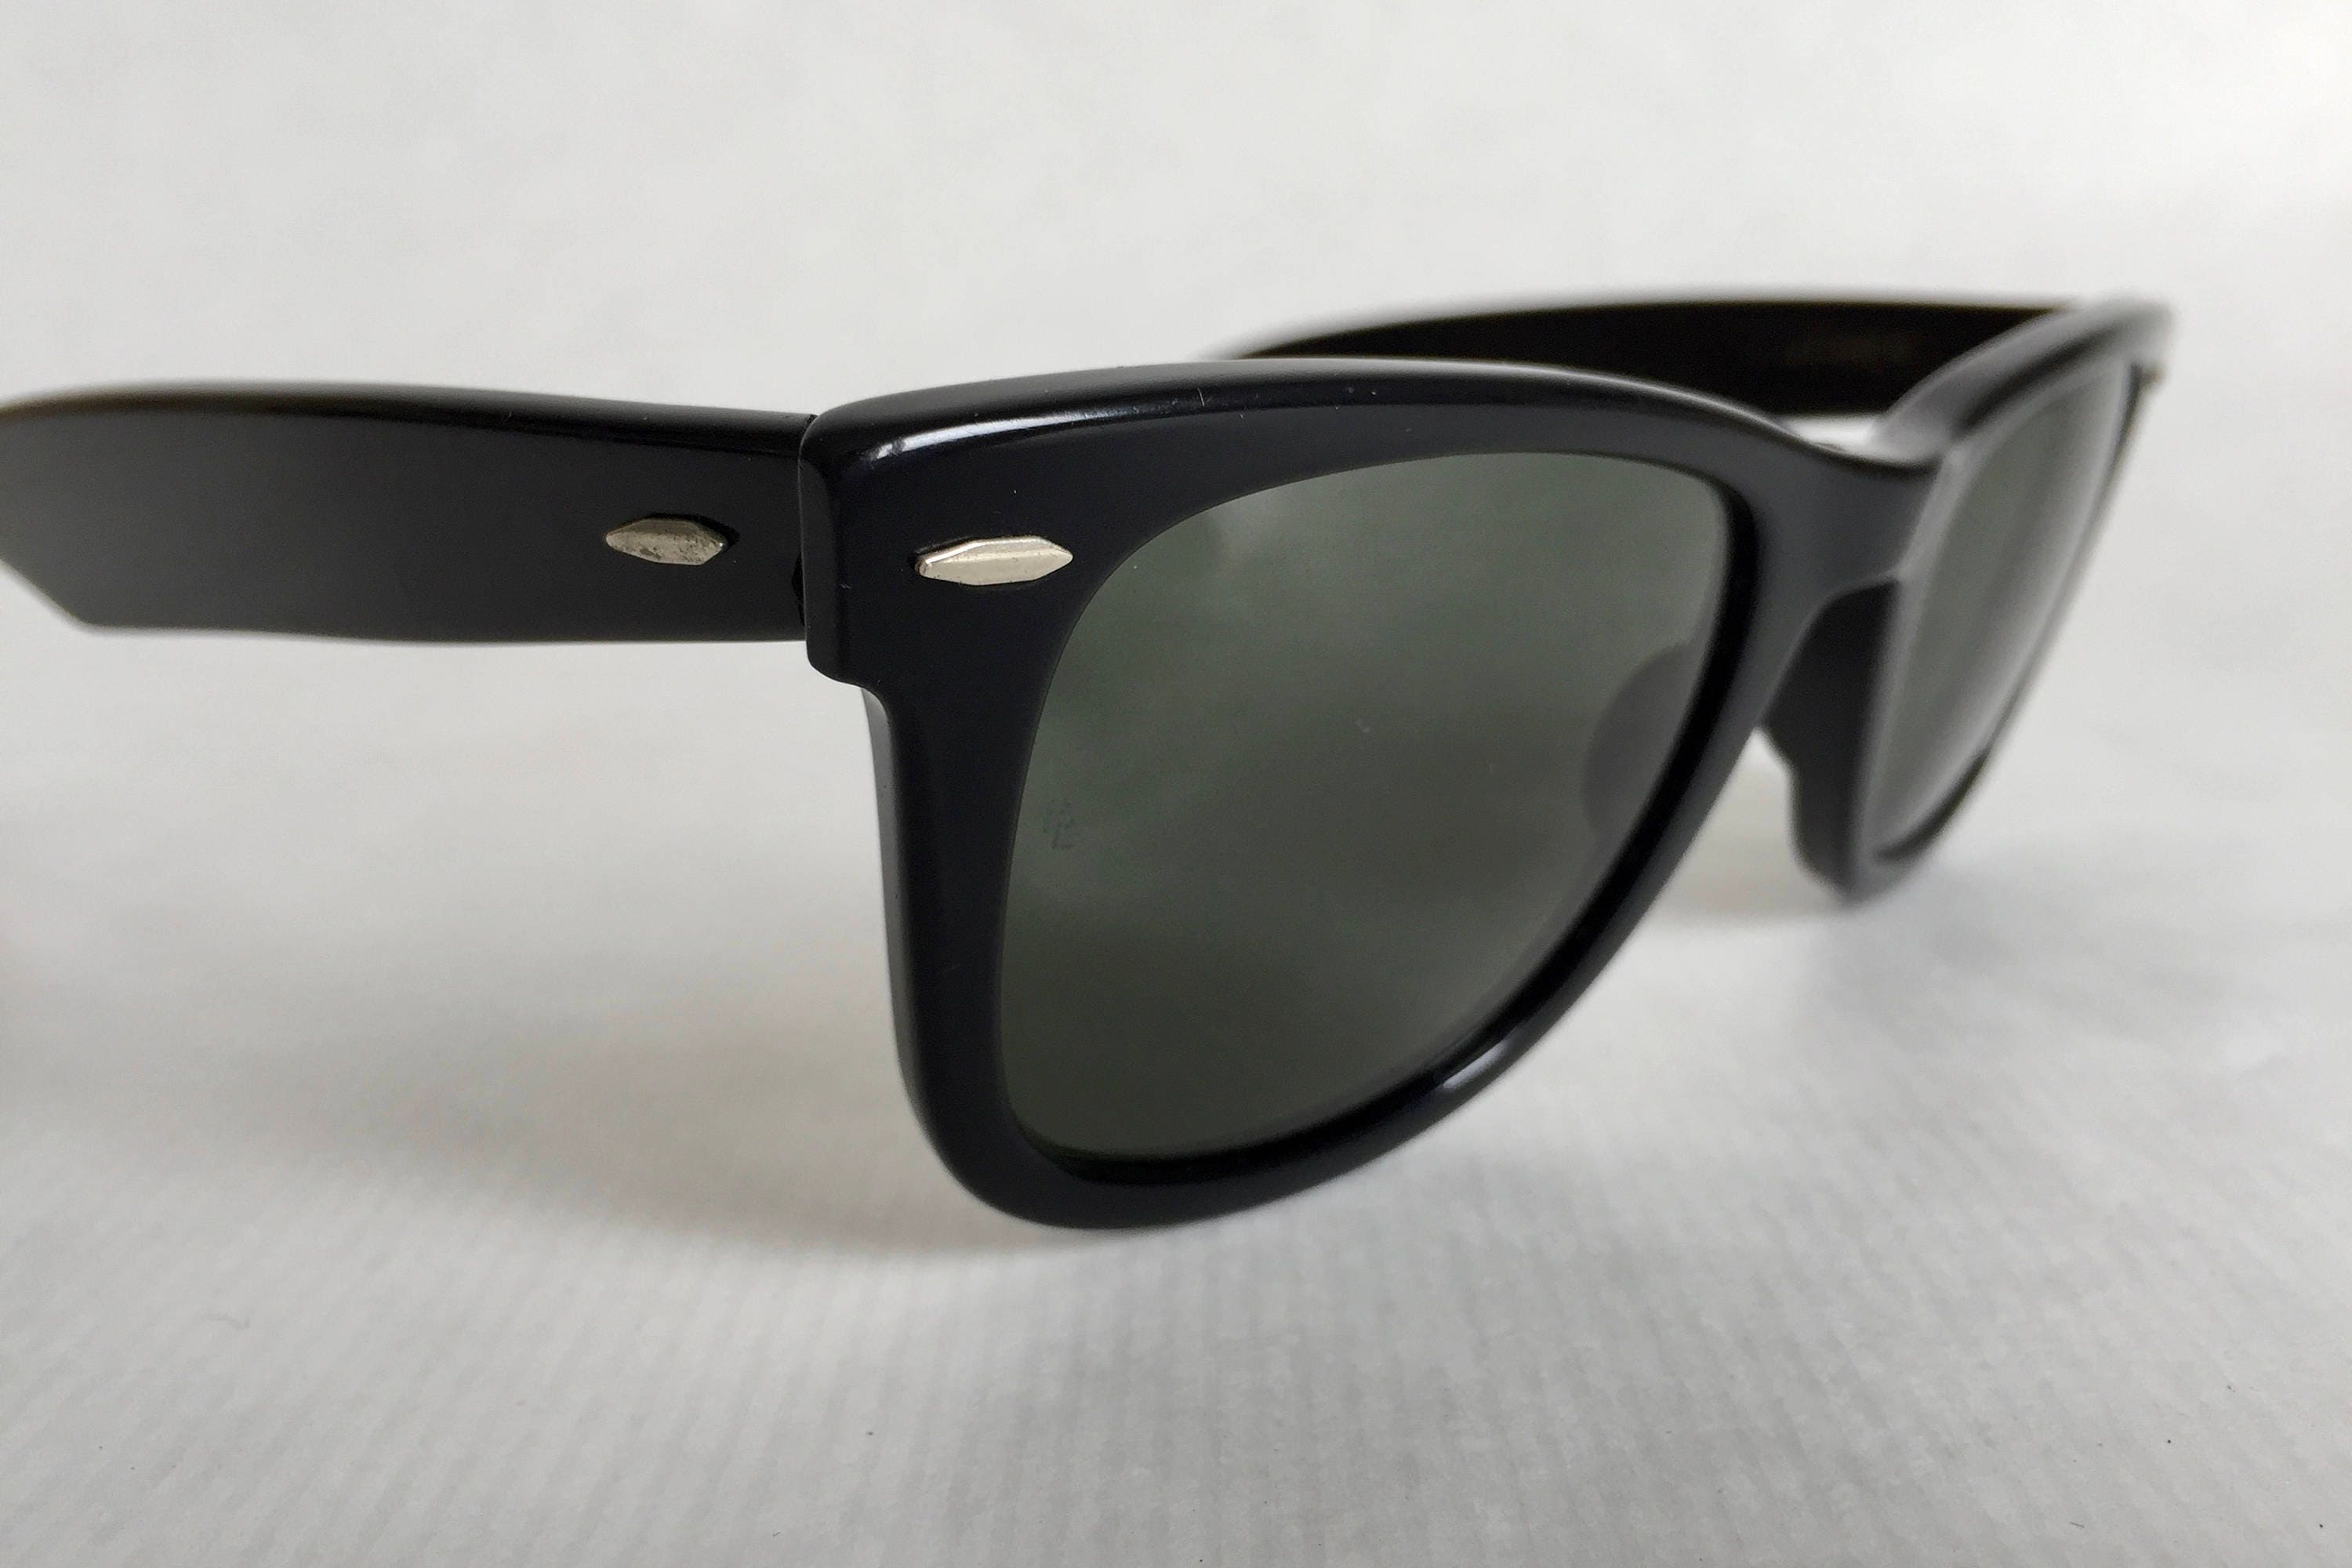 186fd38e36 Ray-Ban WAYFARER by Bausch   Lomb Vintage Sunglasses First Generation.  gallery photo gallery photo ...